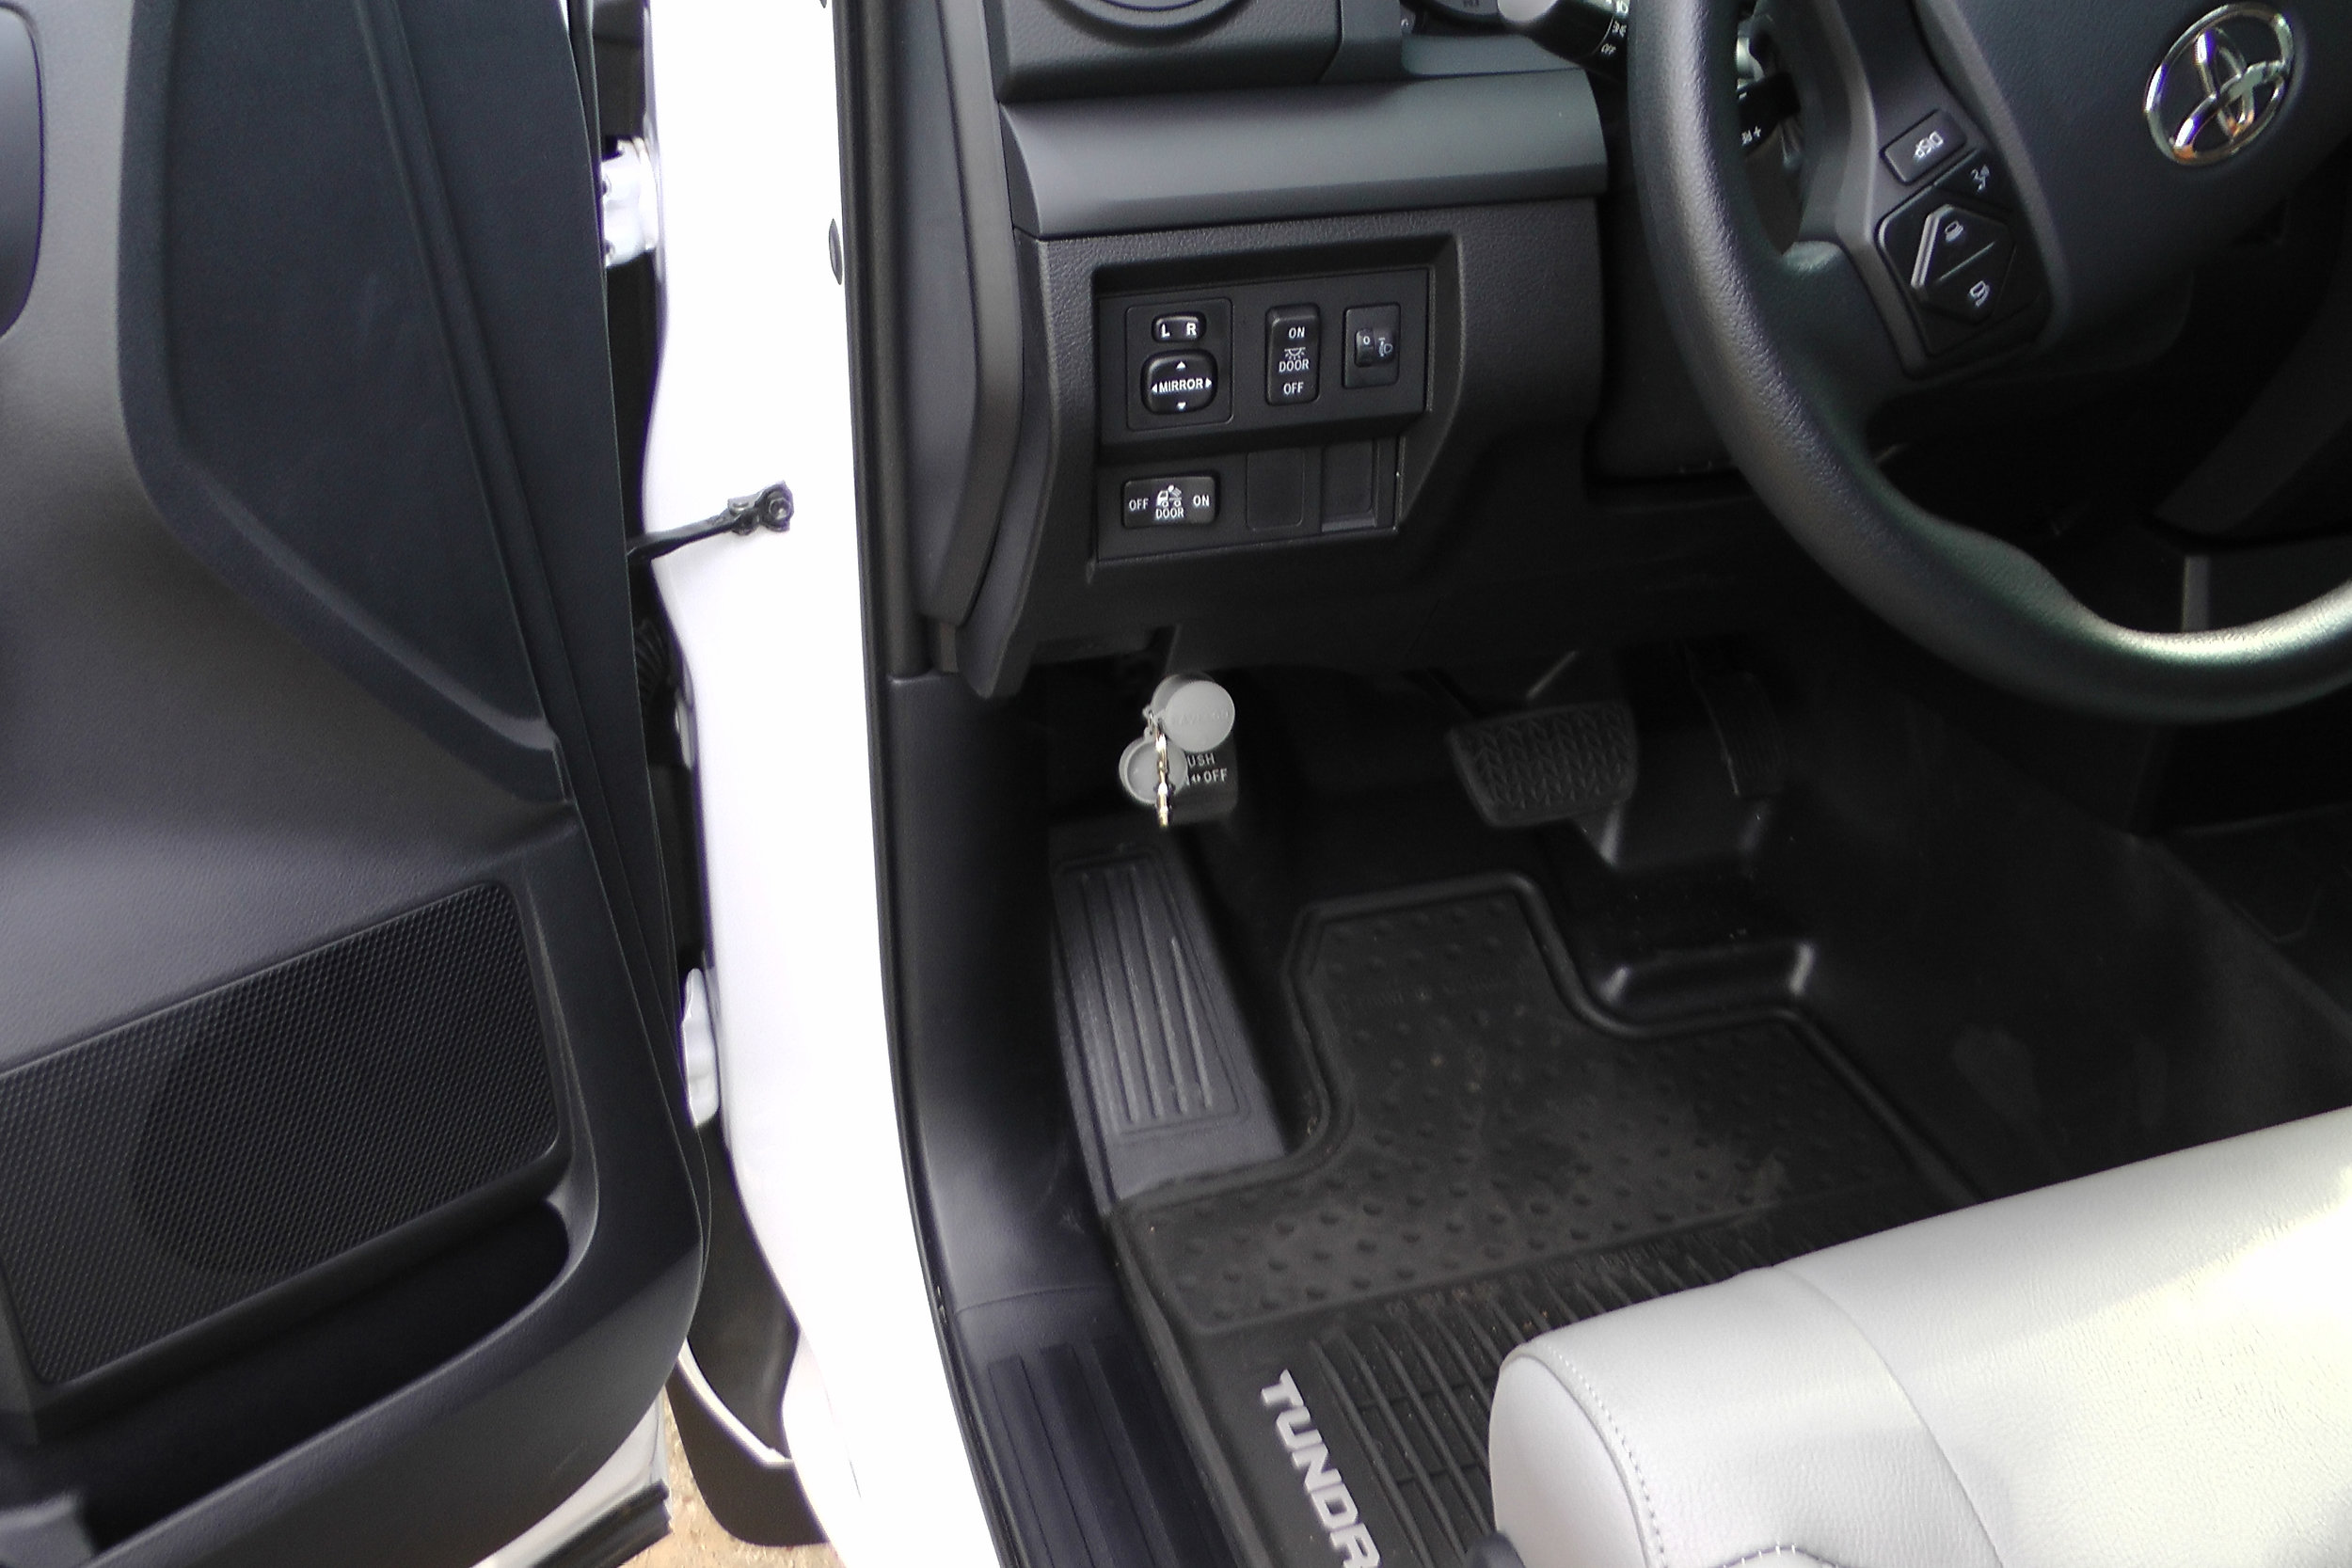 Copy of Installed Ravelco anti theft device